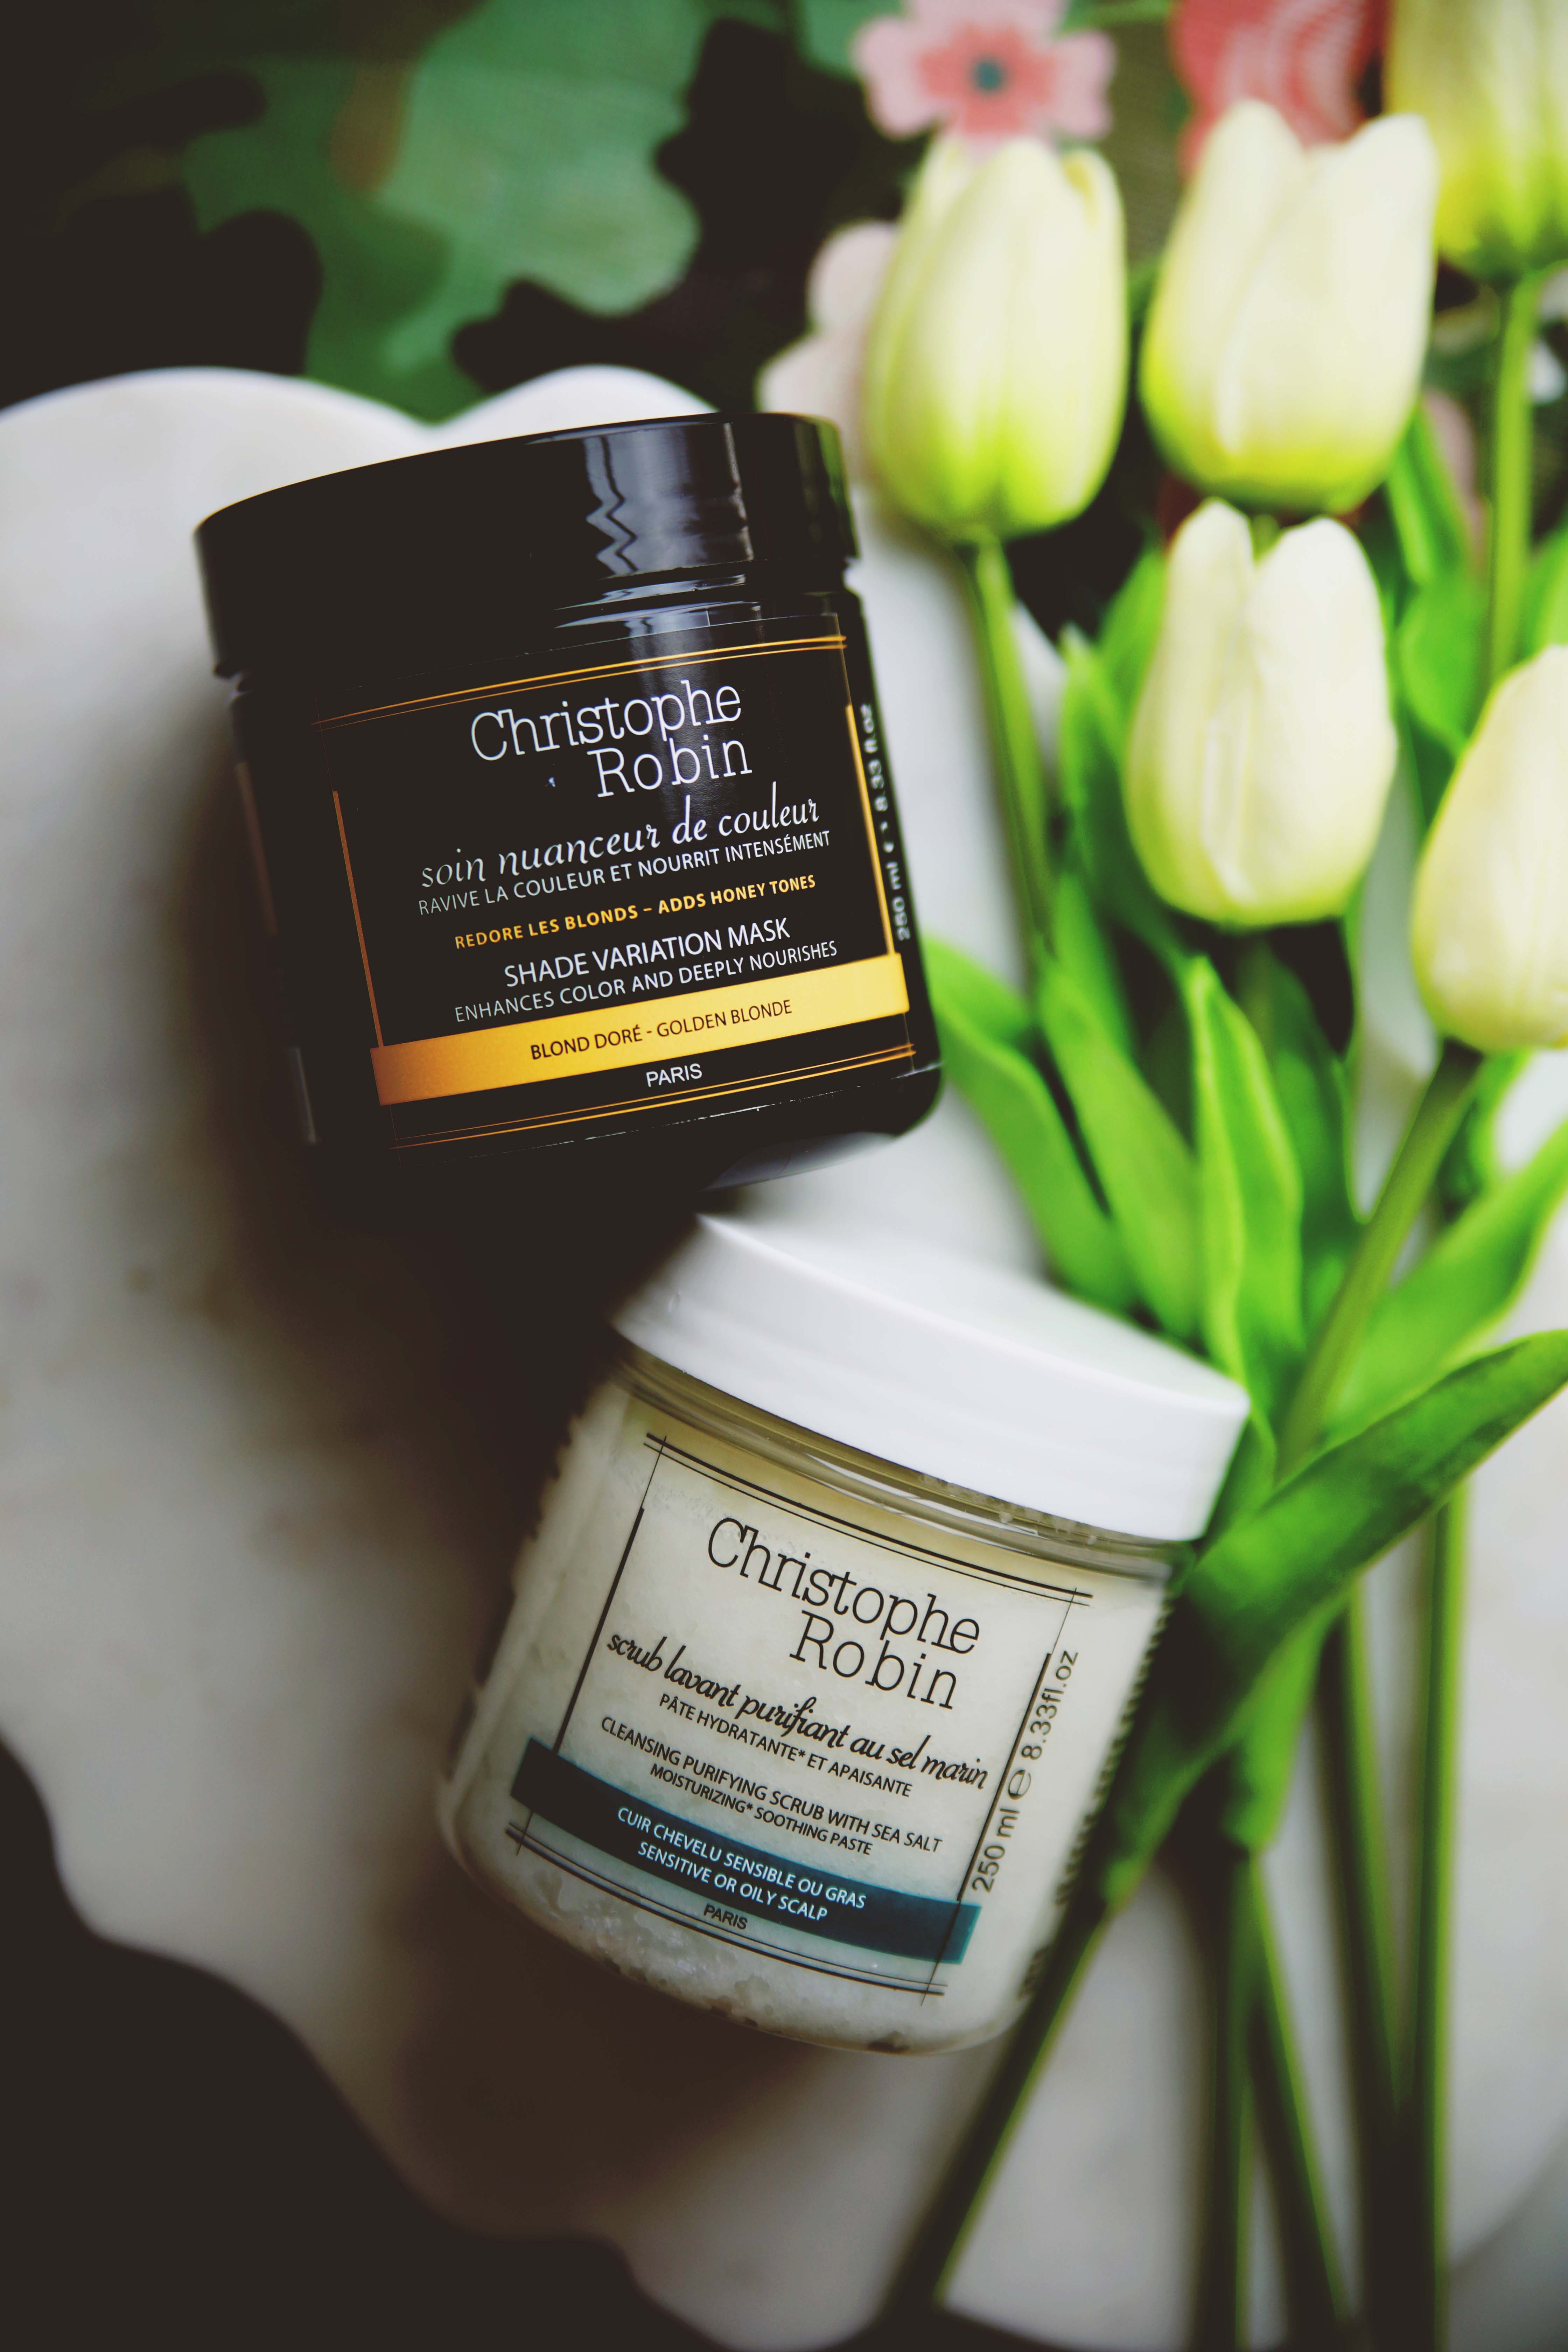 Christophe Robin Shade Variation Mask in Golden Blonde, Christophe Robin Cleansing Purifying Scrub with Sea Salt